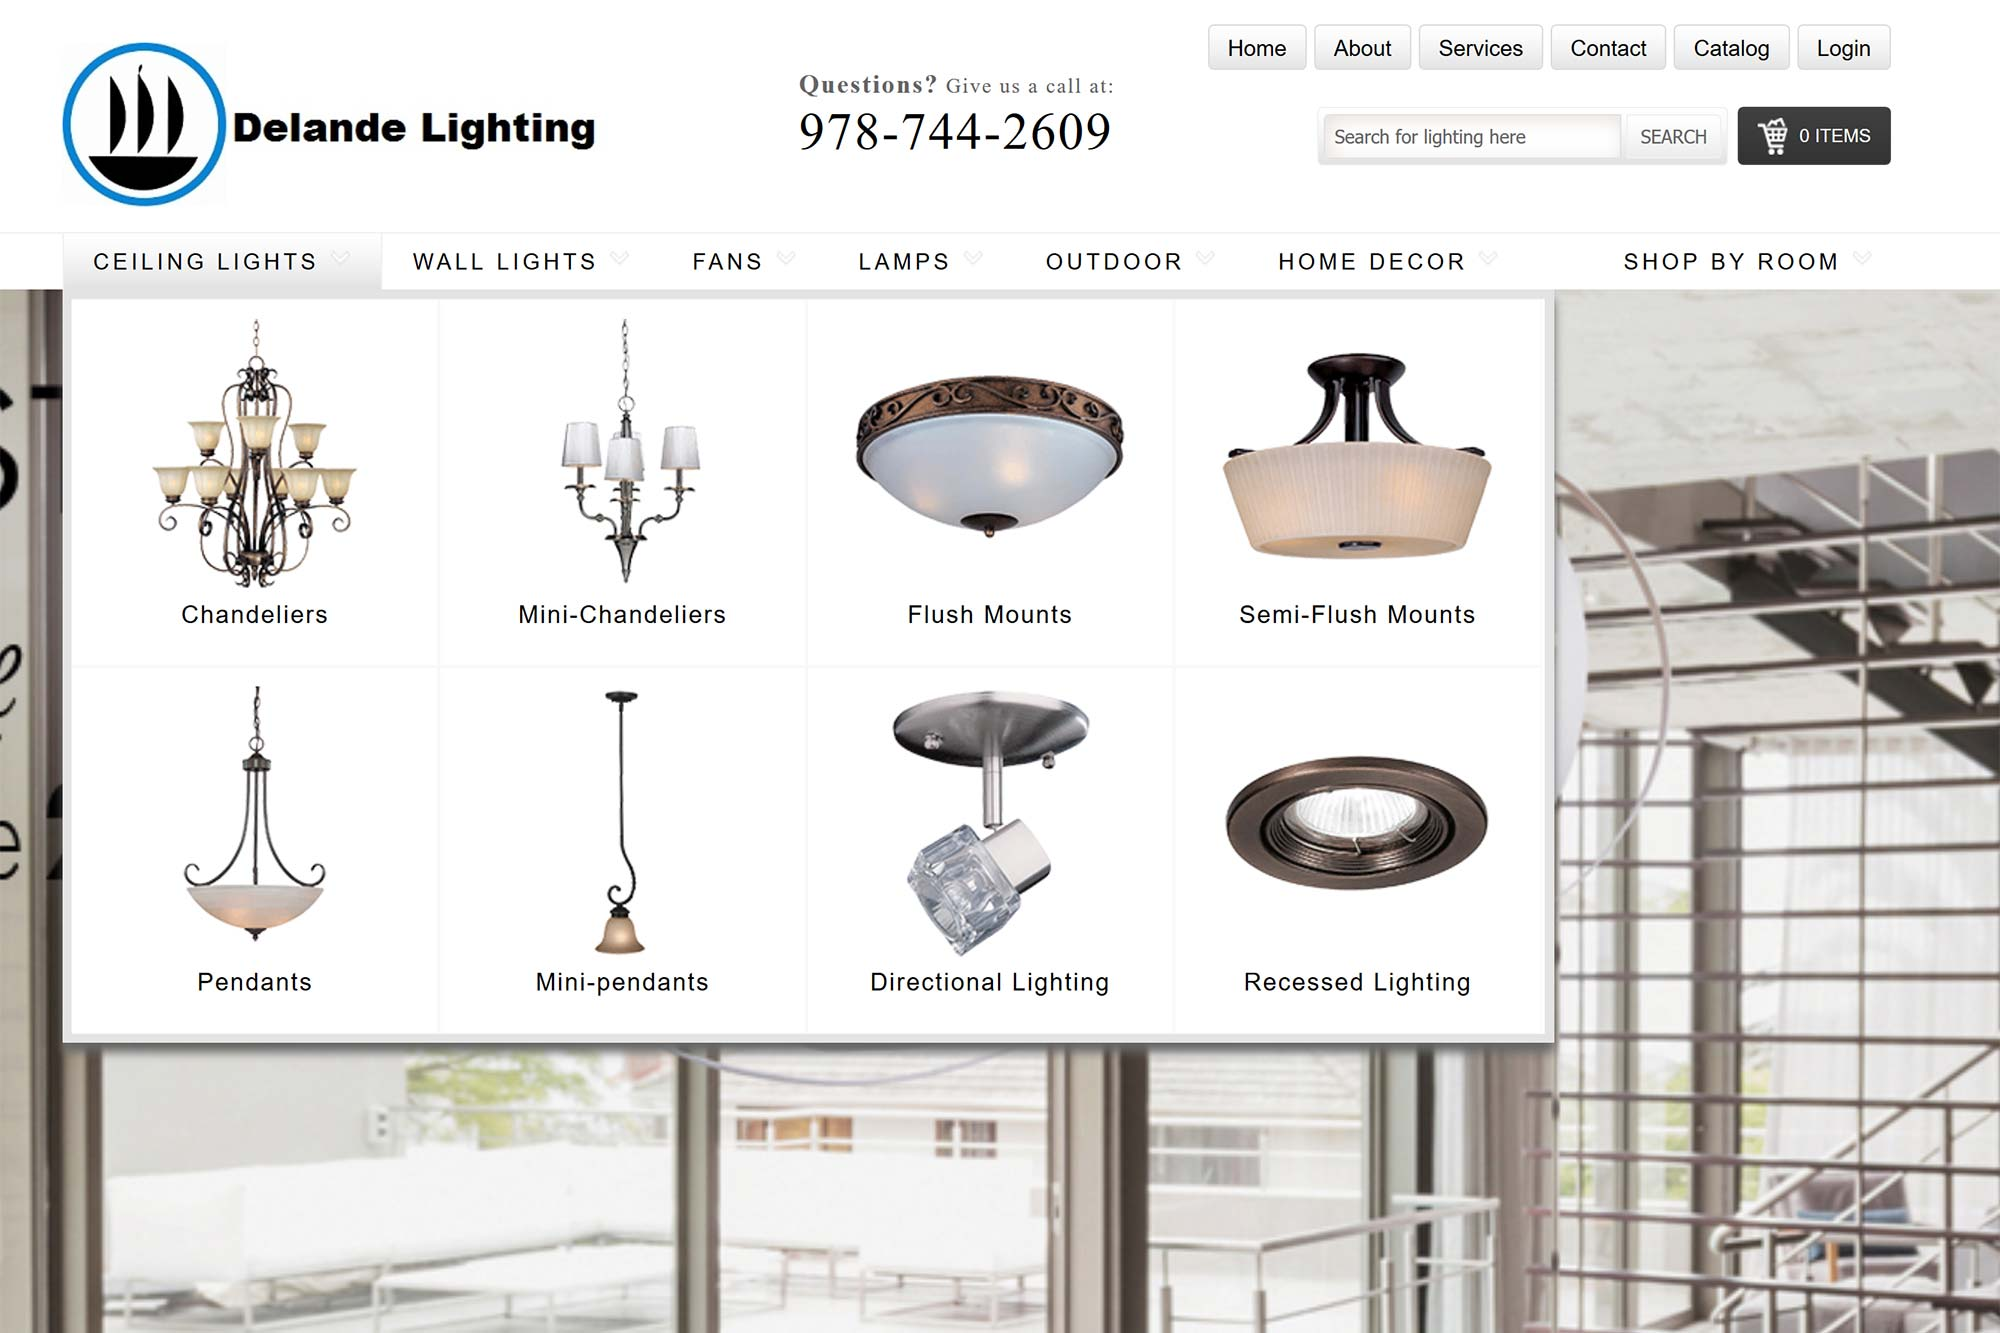 Delande wholesale distributors of electrical supplies and lighting fixtures